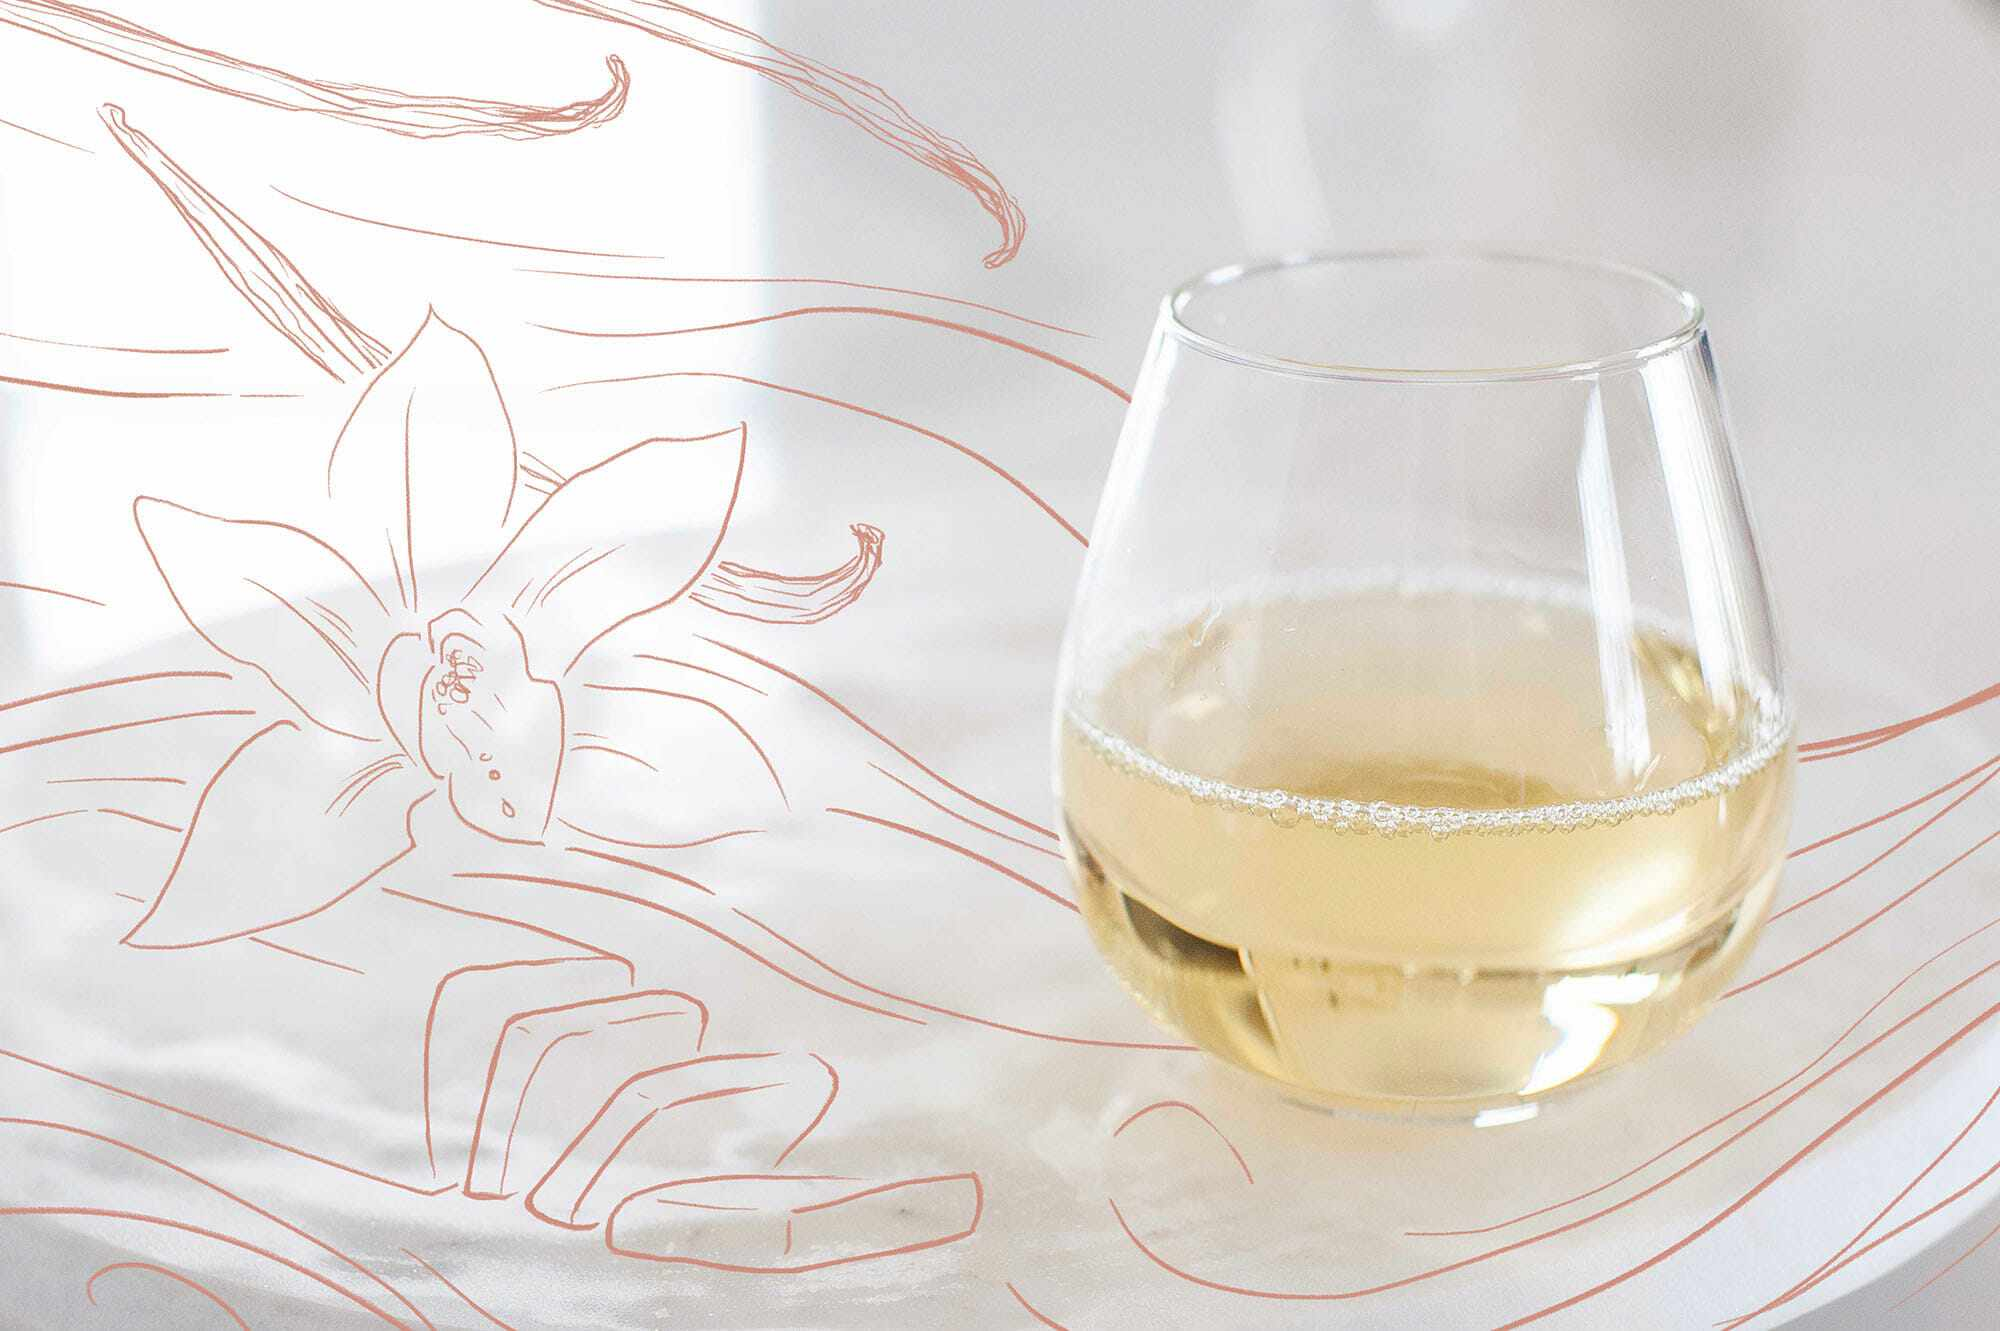 A glass of white wine a flower and stick of butter drawn to the left.